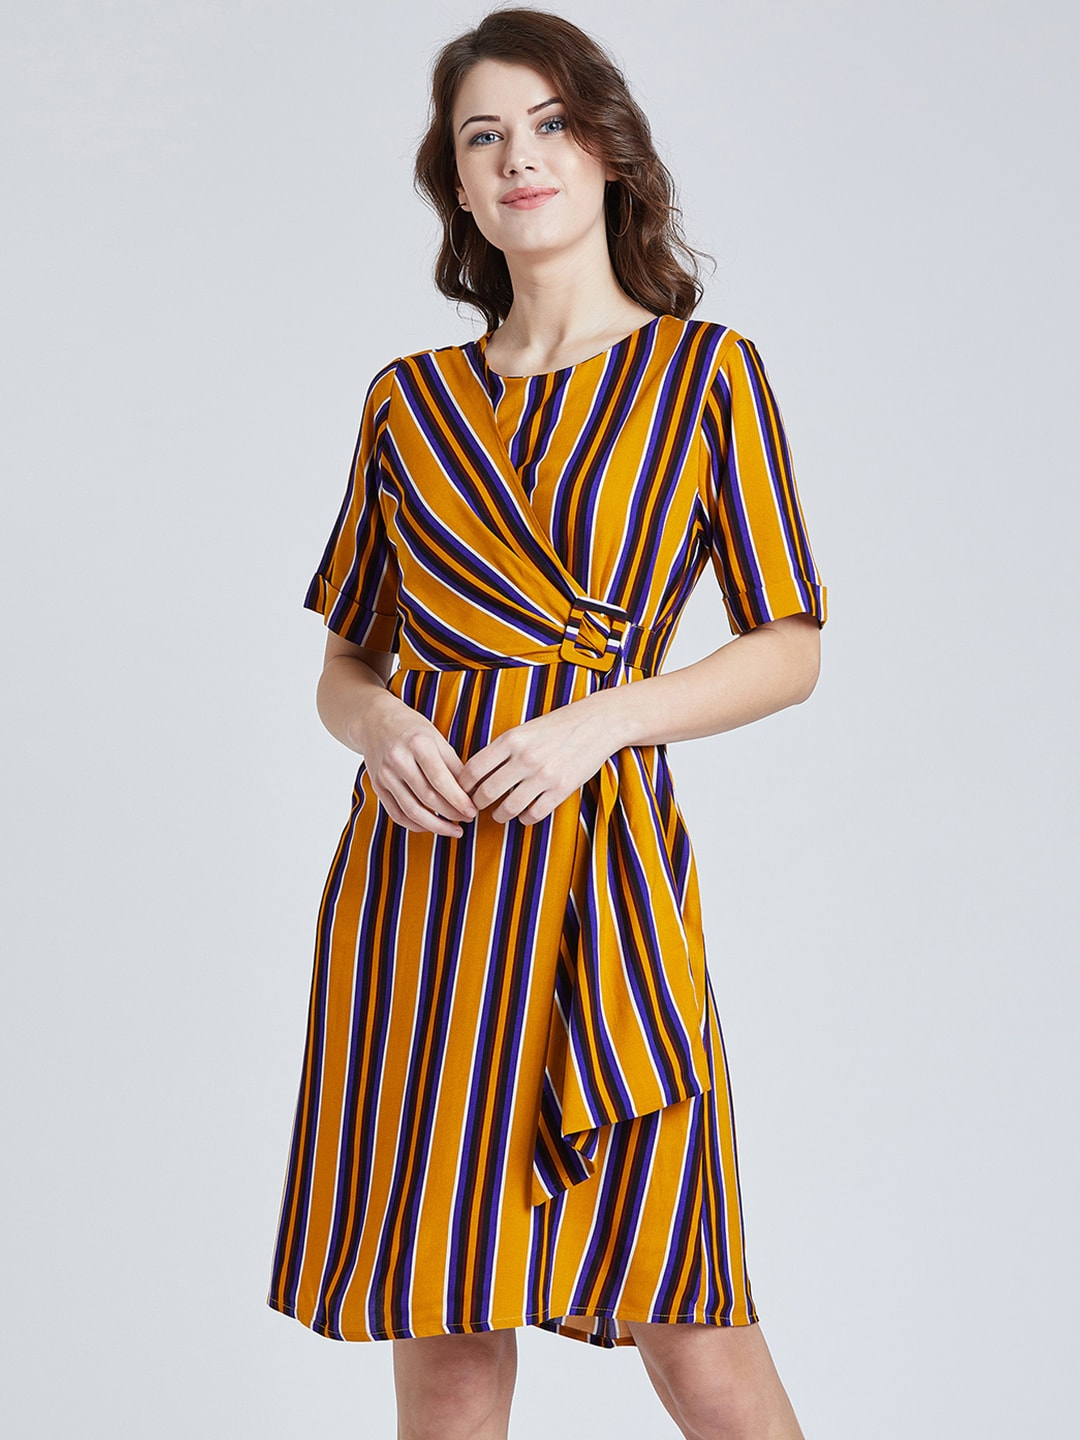 c3eca029846a One Piece Dress - Buy One Piece Dresses for Women Online in India